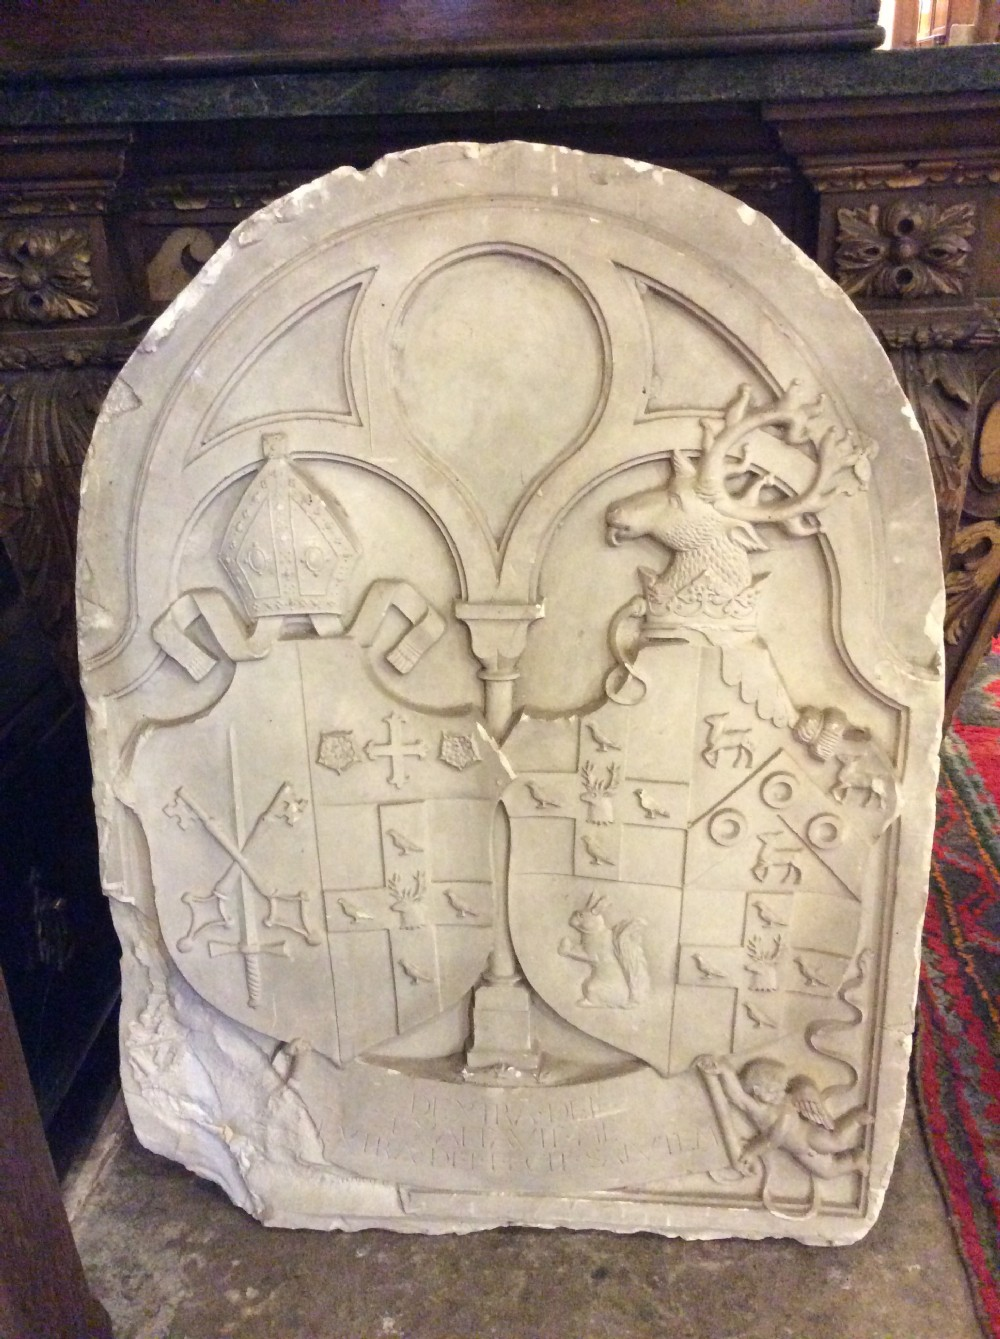 a 19thc plaster relief of a coat of arms